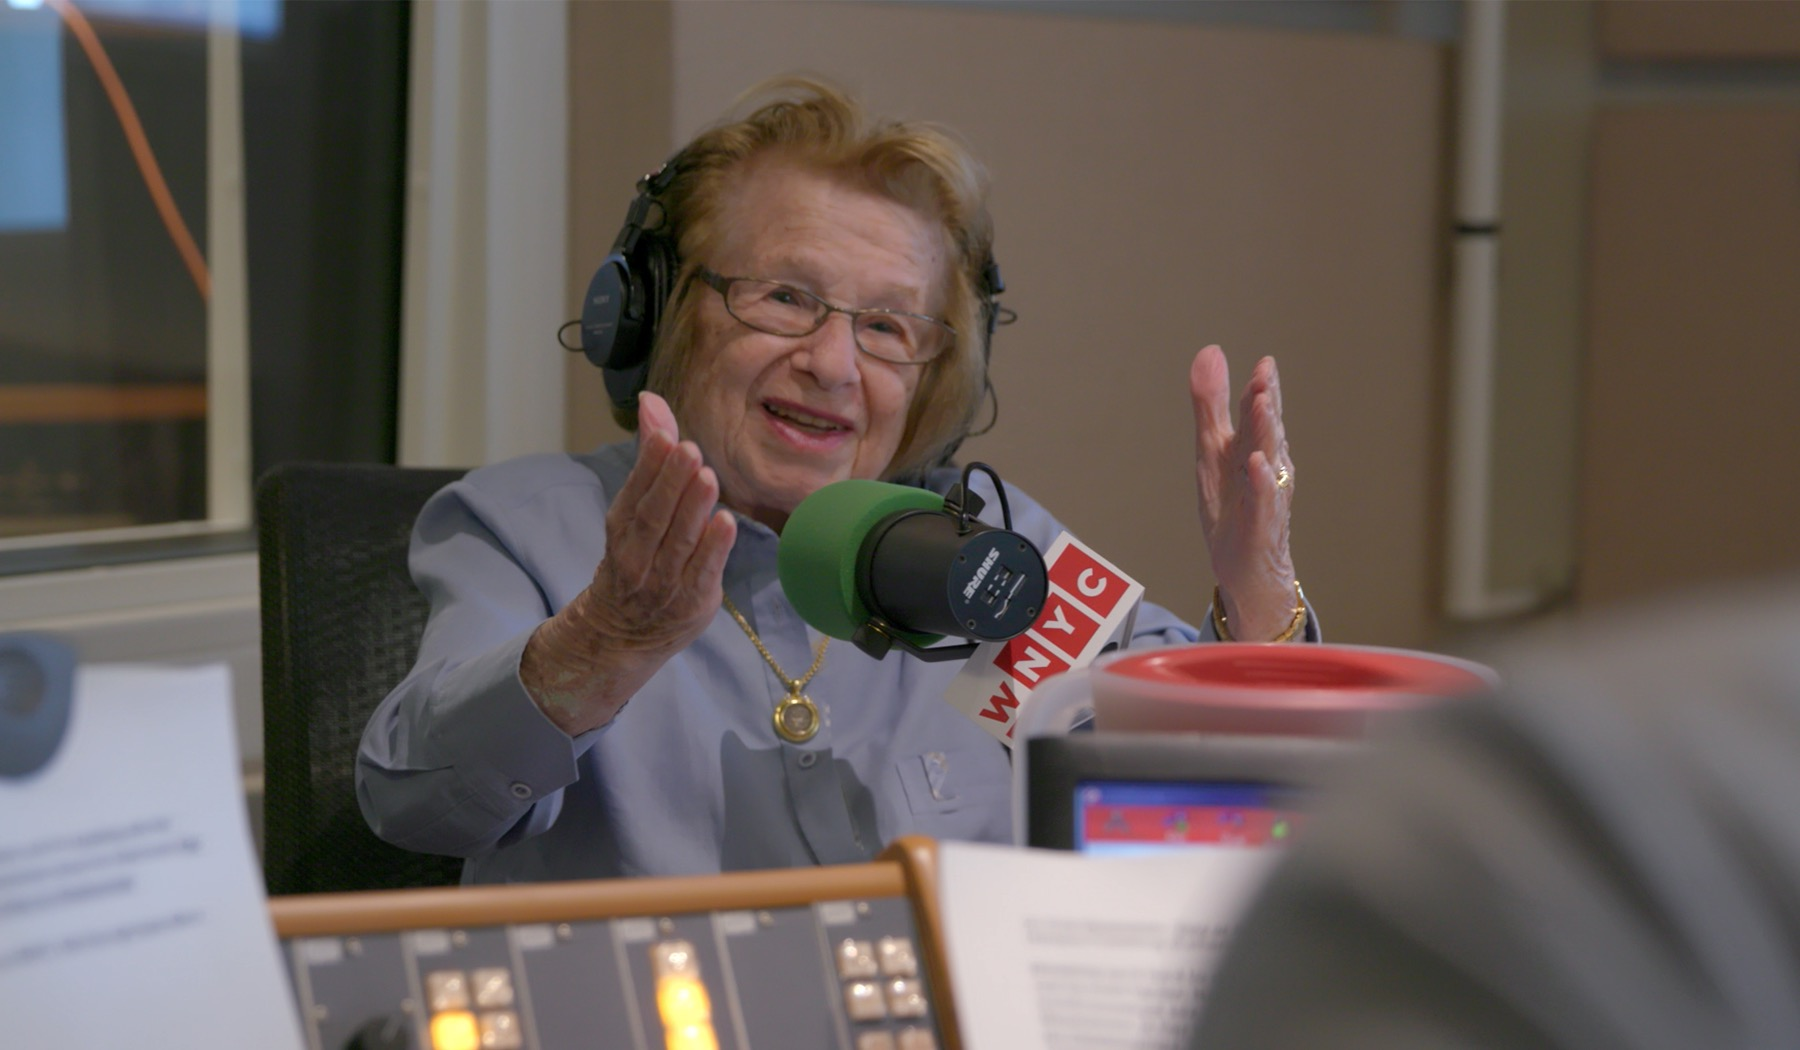 At age 90, an engaging and vital Dr. Ruth looks back on a past she'd sometimes prefer to forget